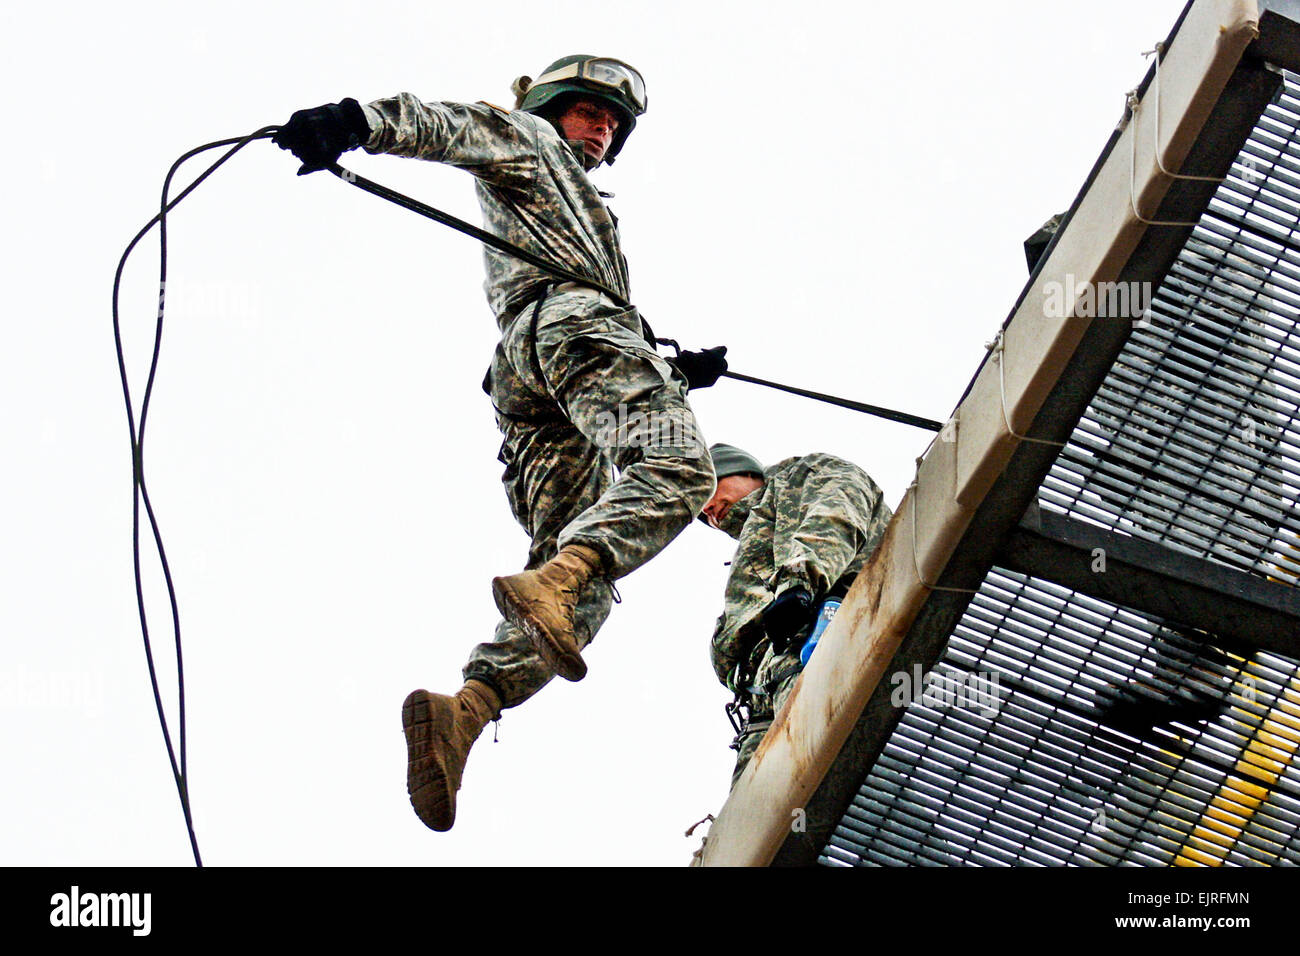 Missouri National Guardsman Cadet Andrew Cully leaps from the top of the rappel tower during part of the Guard's - Stock Image